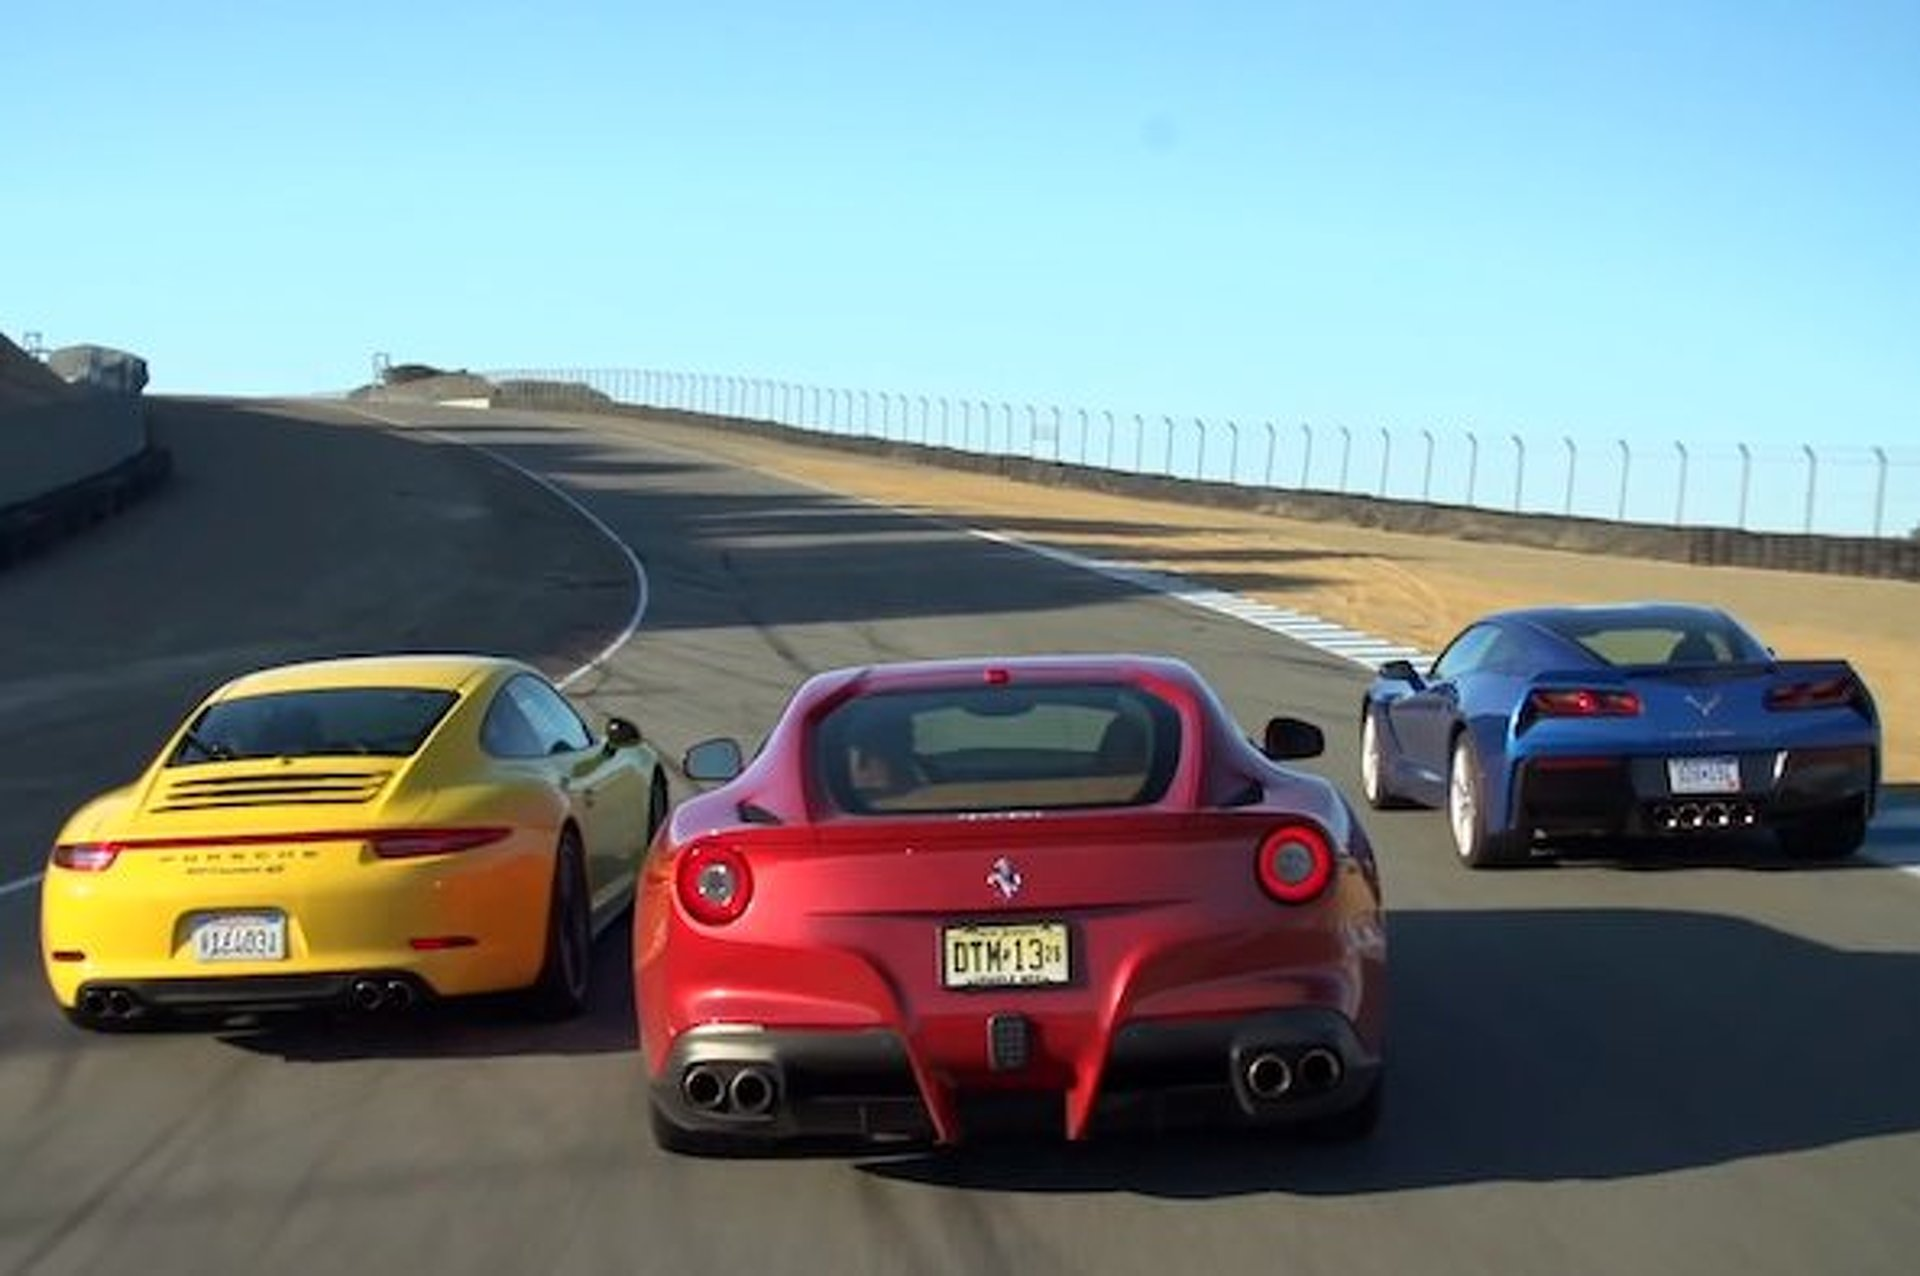 Stingray, 911, F12berlinetta: Head to Head to Head [video]